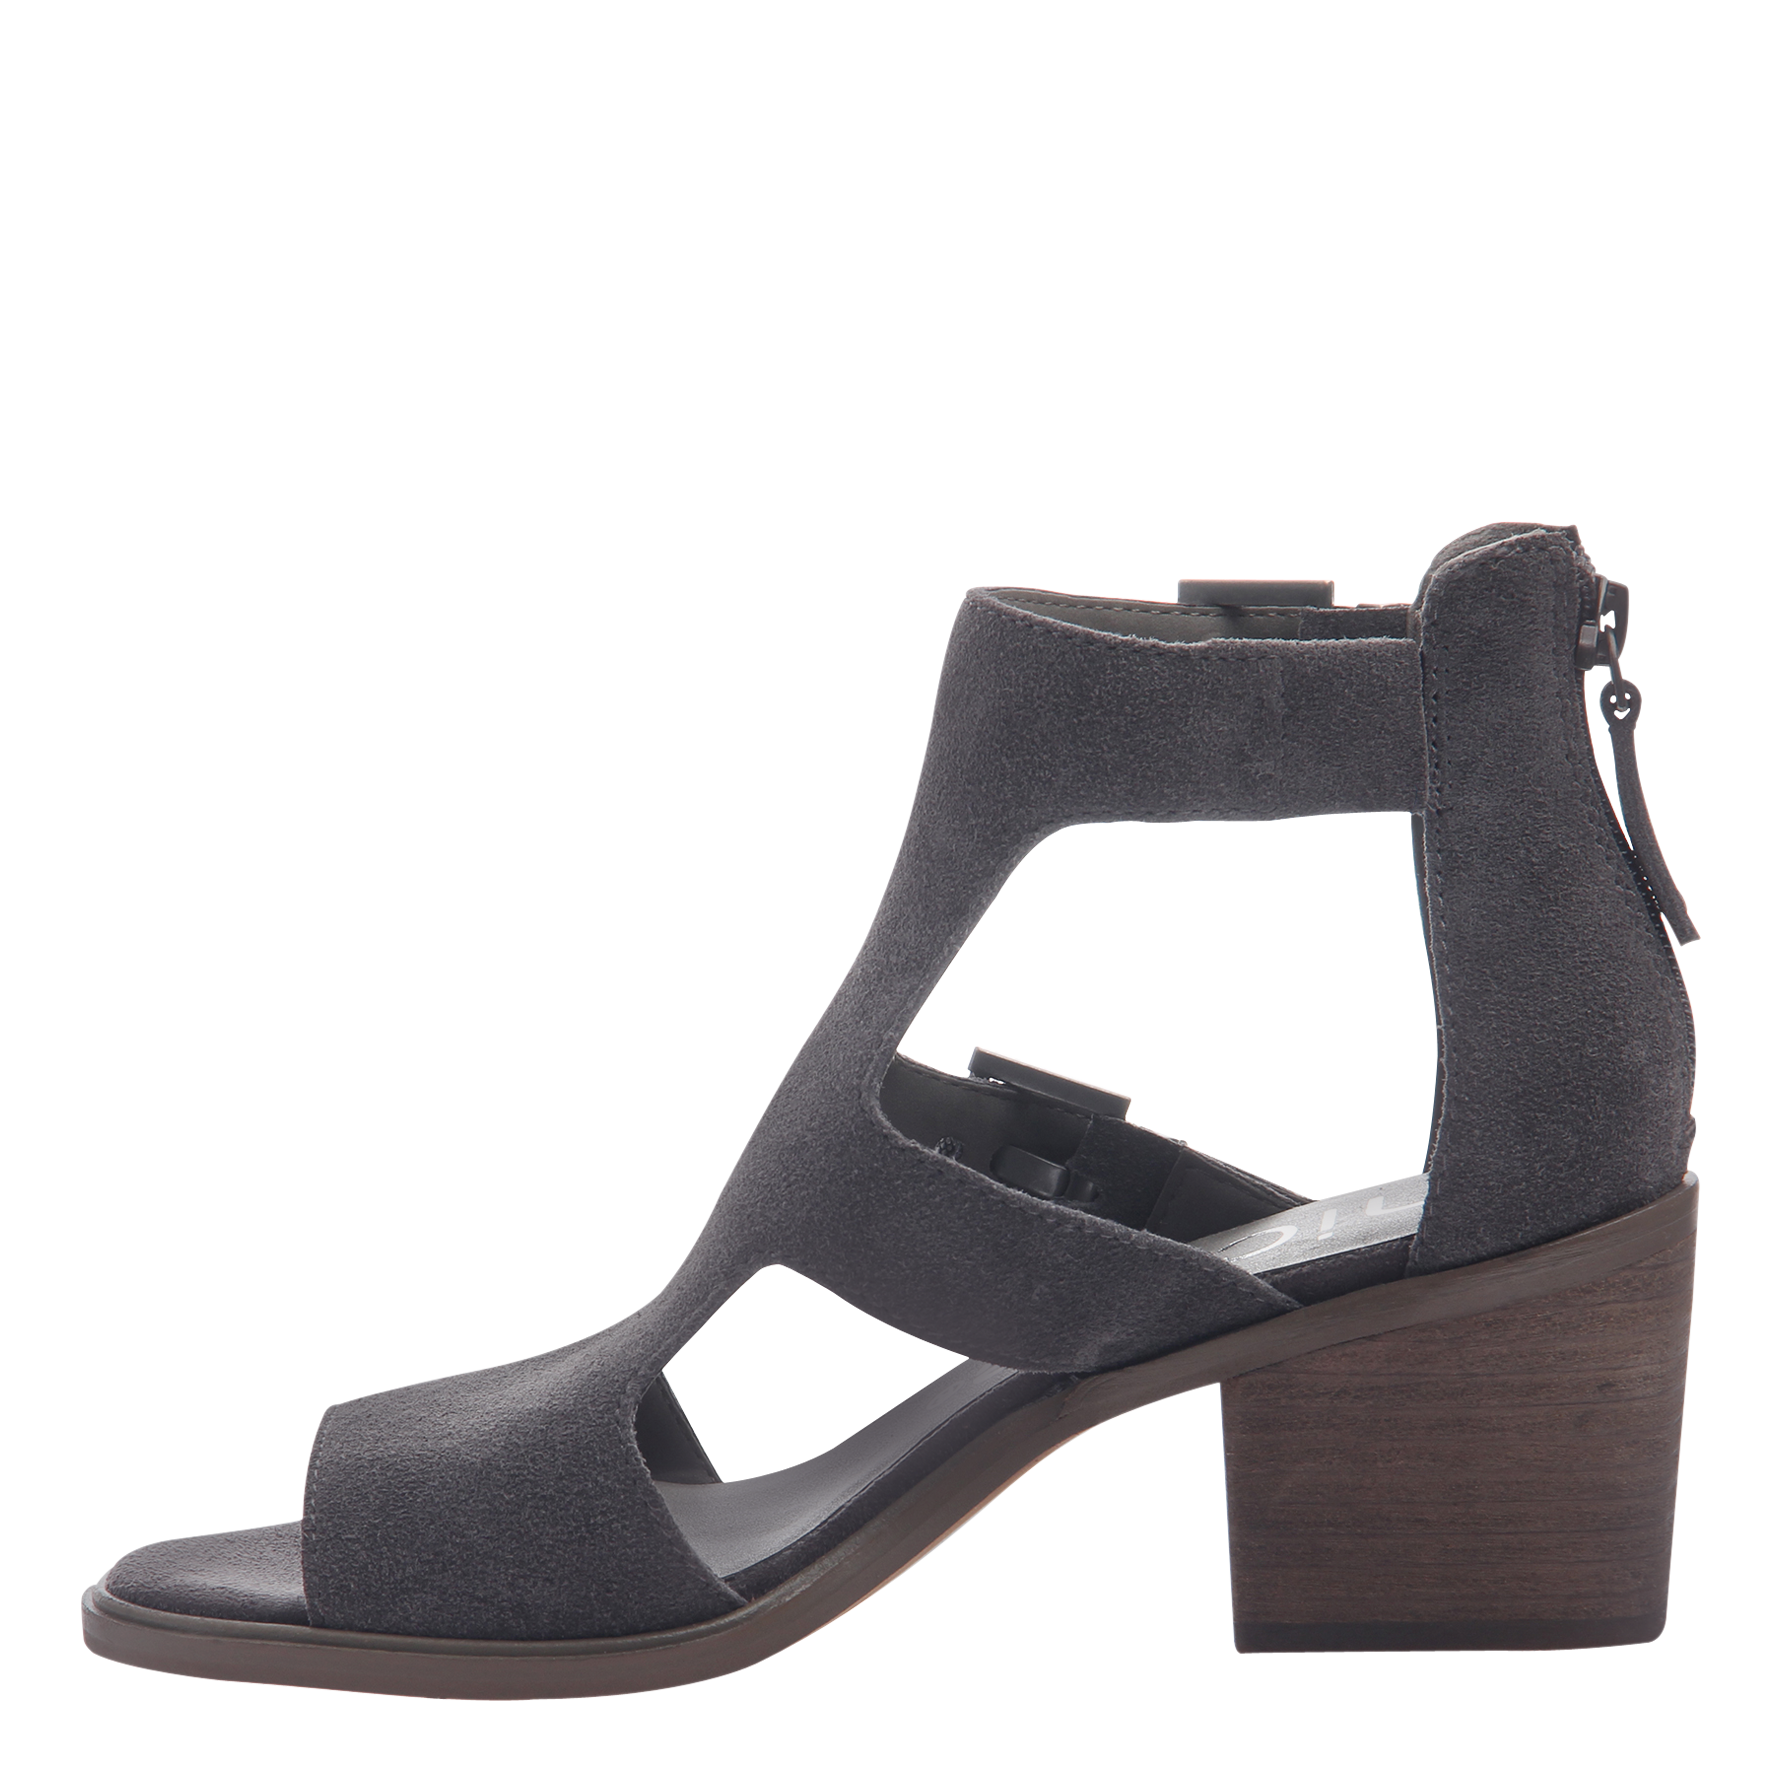 Womens heeled sandals in Jahida soft grey inside view